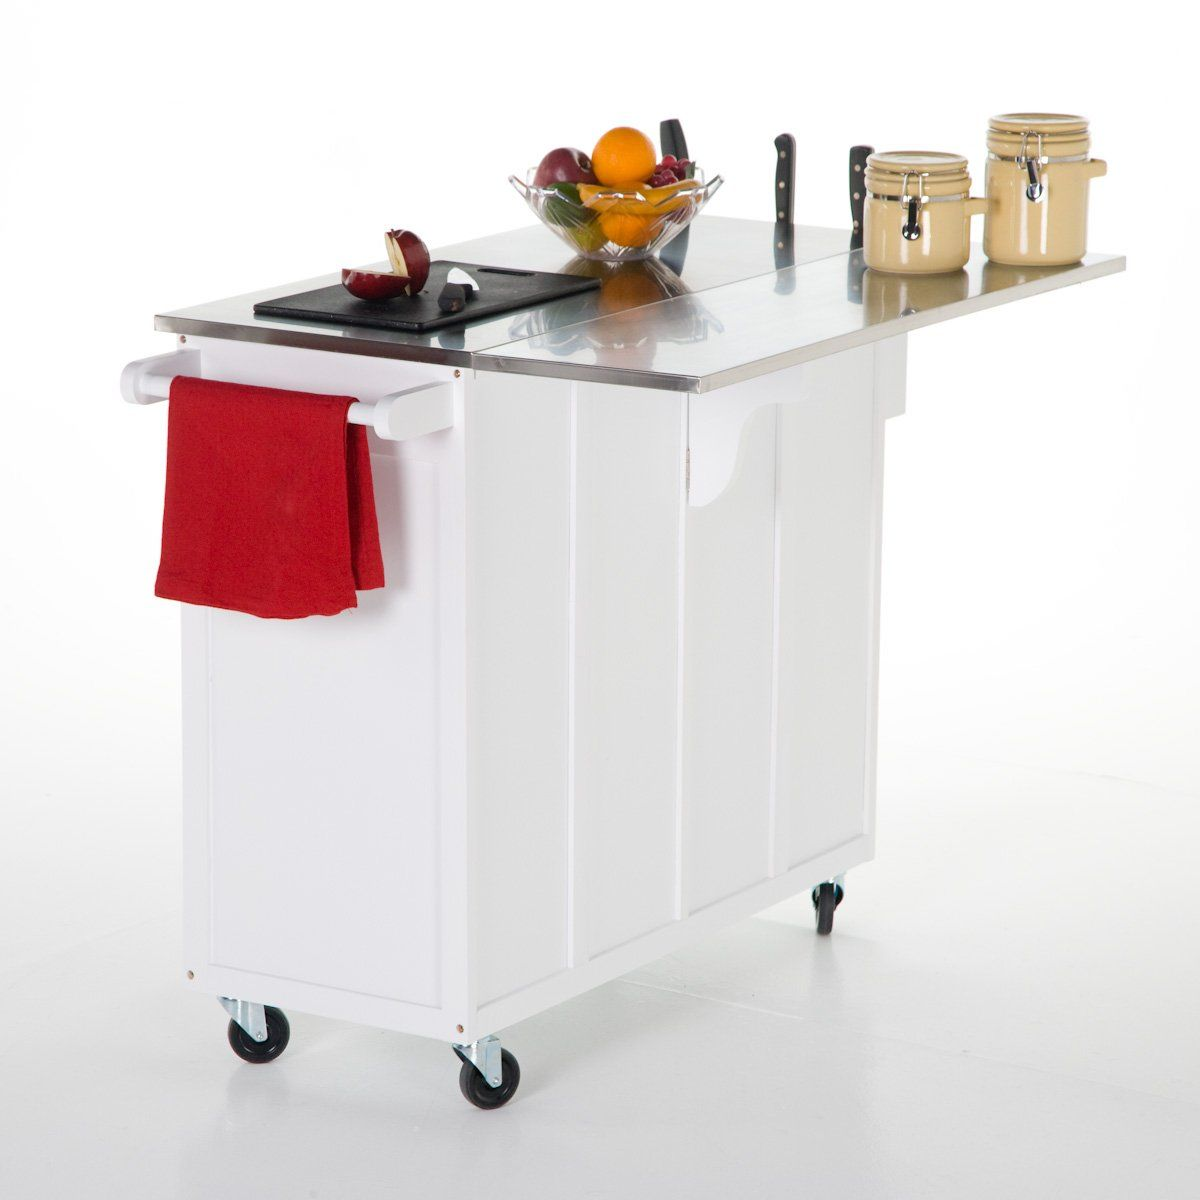 portable island kitchen step stool for the randall with optional stools